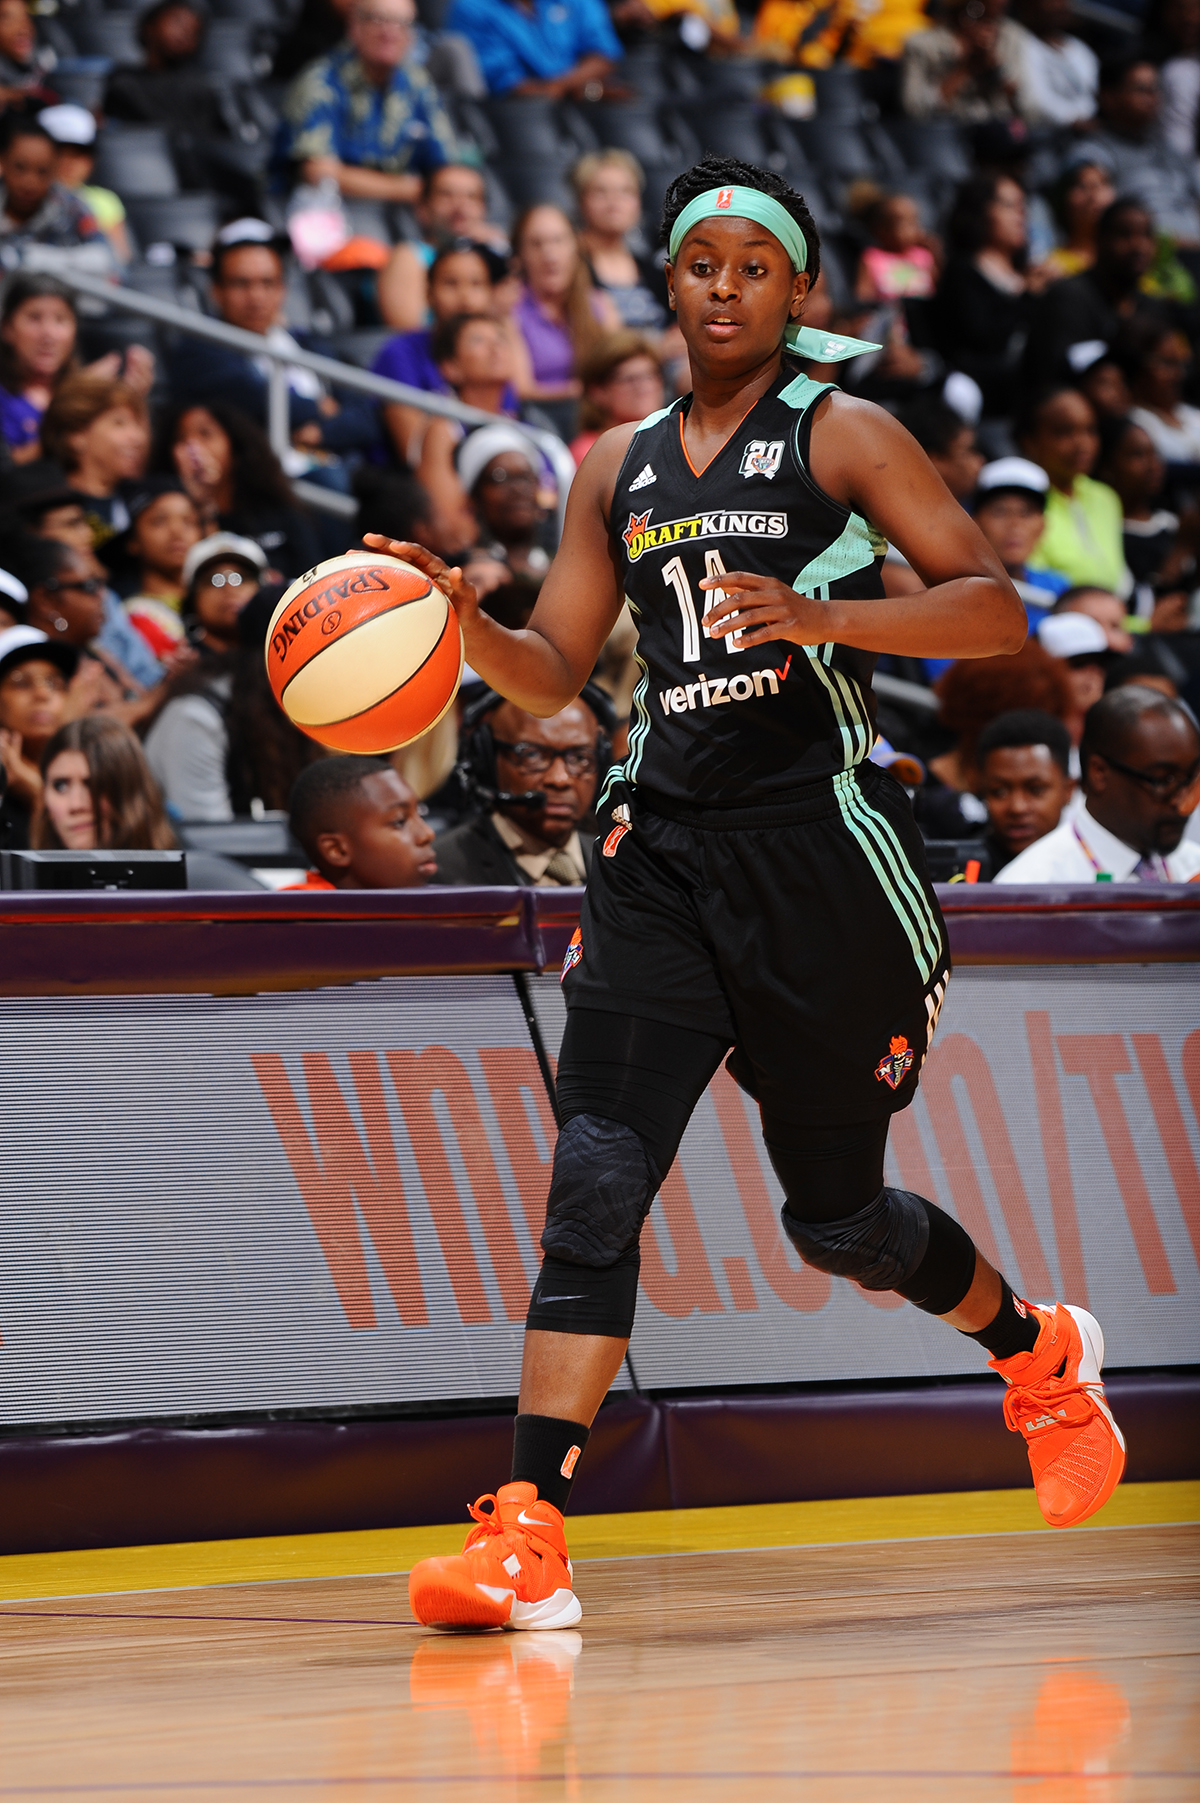 LOS ANGELES, CA - JUNE 7: Sugar Rodgers #14 of the New York Liberty brings the ball up court against the Los Angeles Sparks on June 7, 2016 at STAPLES Center in Los Angeles, California. NOTE TO USER: User expressly acknowledges and agrees that, by downloading and/or using this Photograph, user is consenting to the terms and conditions of the Getty Images License Agreement. Mandatory Copyright Notice: Copyright 2016 NBAE (Photo by Juan Ocampo/NBAE via Getty Images)